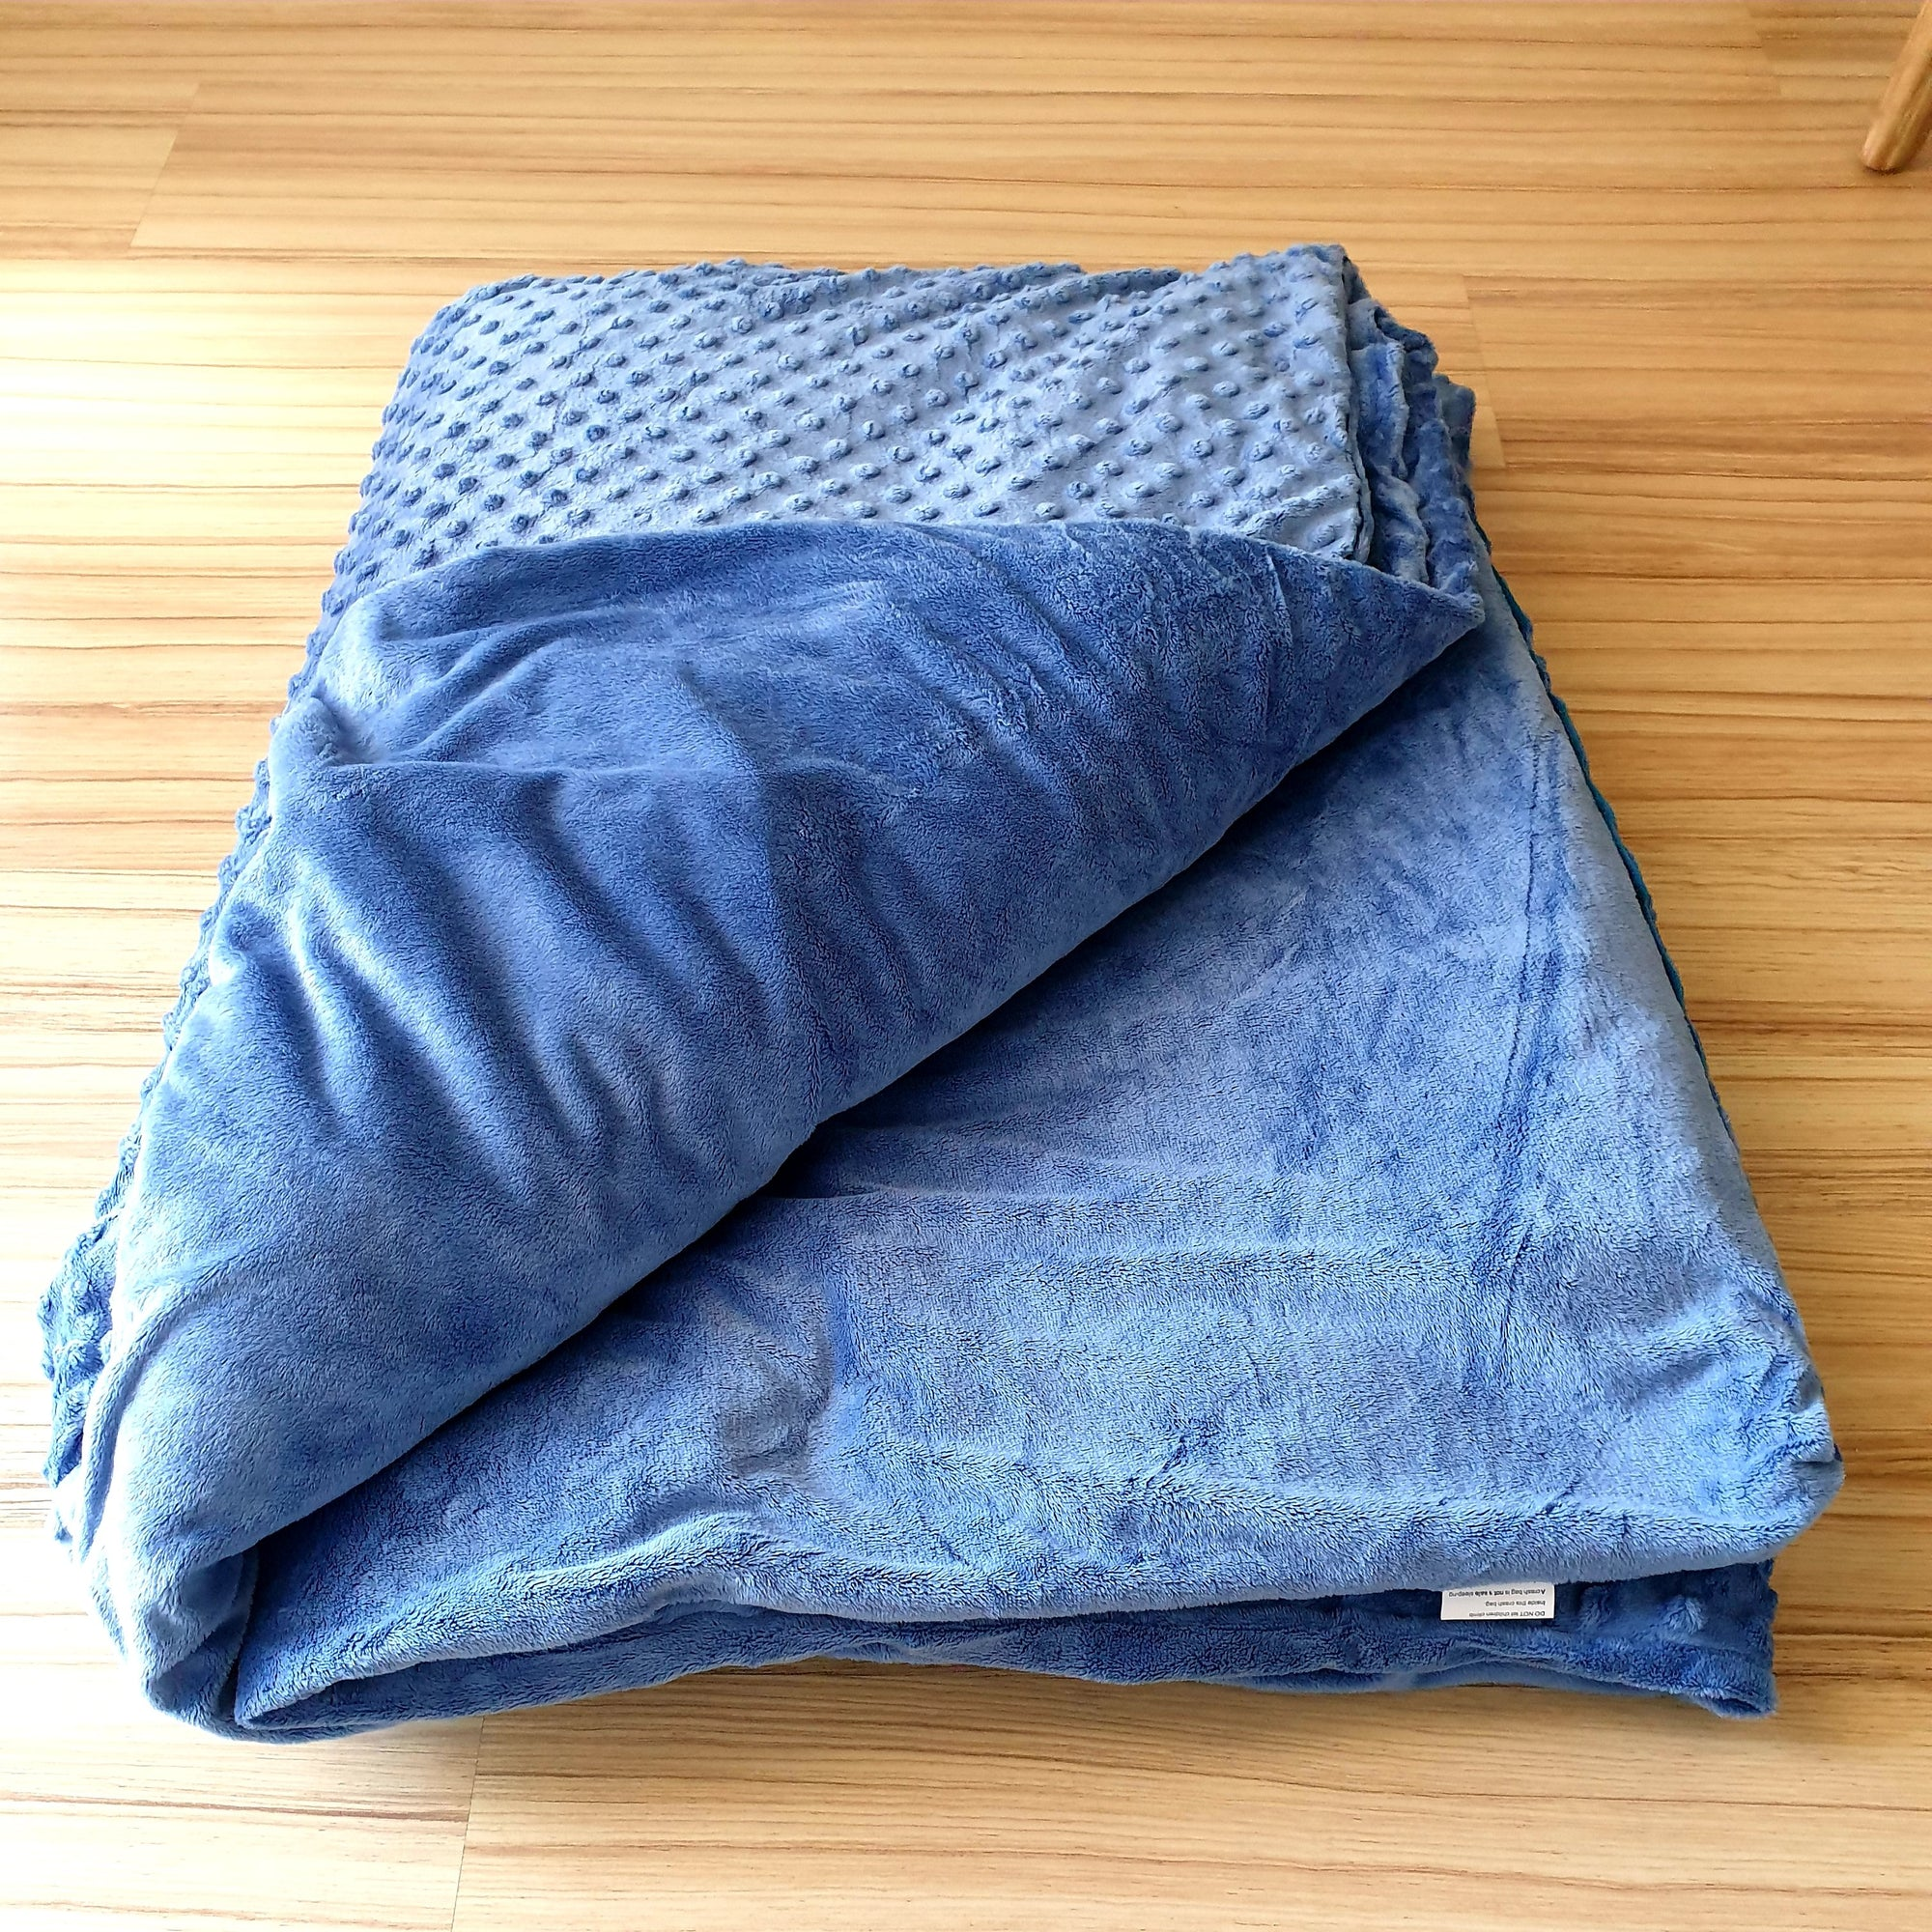 Weighted Blanket Combo with Plush Cover [Padded - Single Bed]